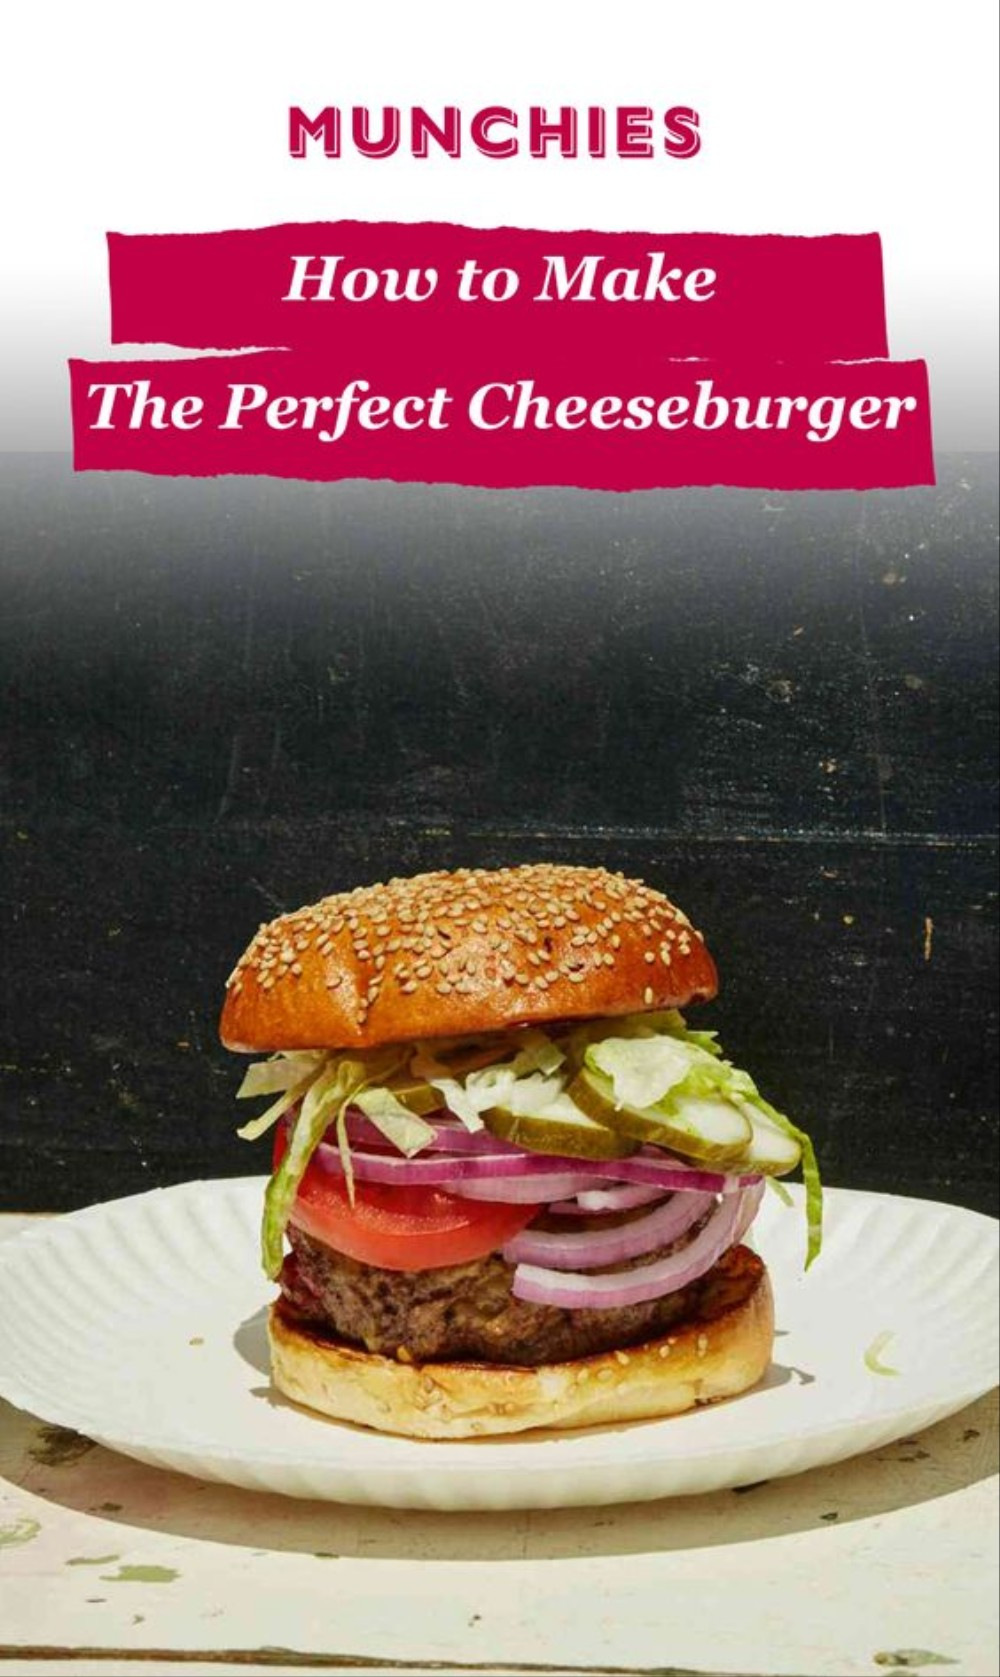 The Perfect Cheeseburger Recipe Is Also the Easiest One - MUNCHIES